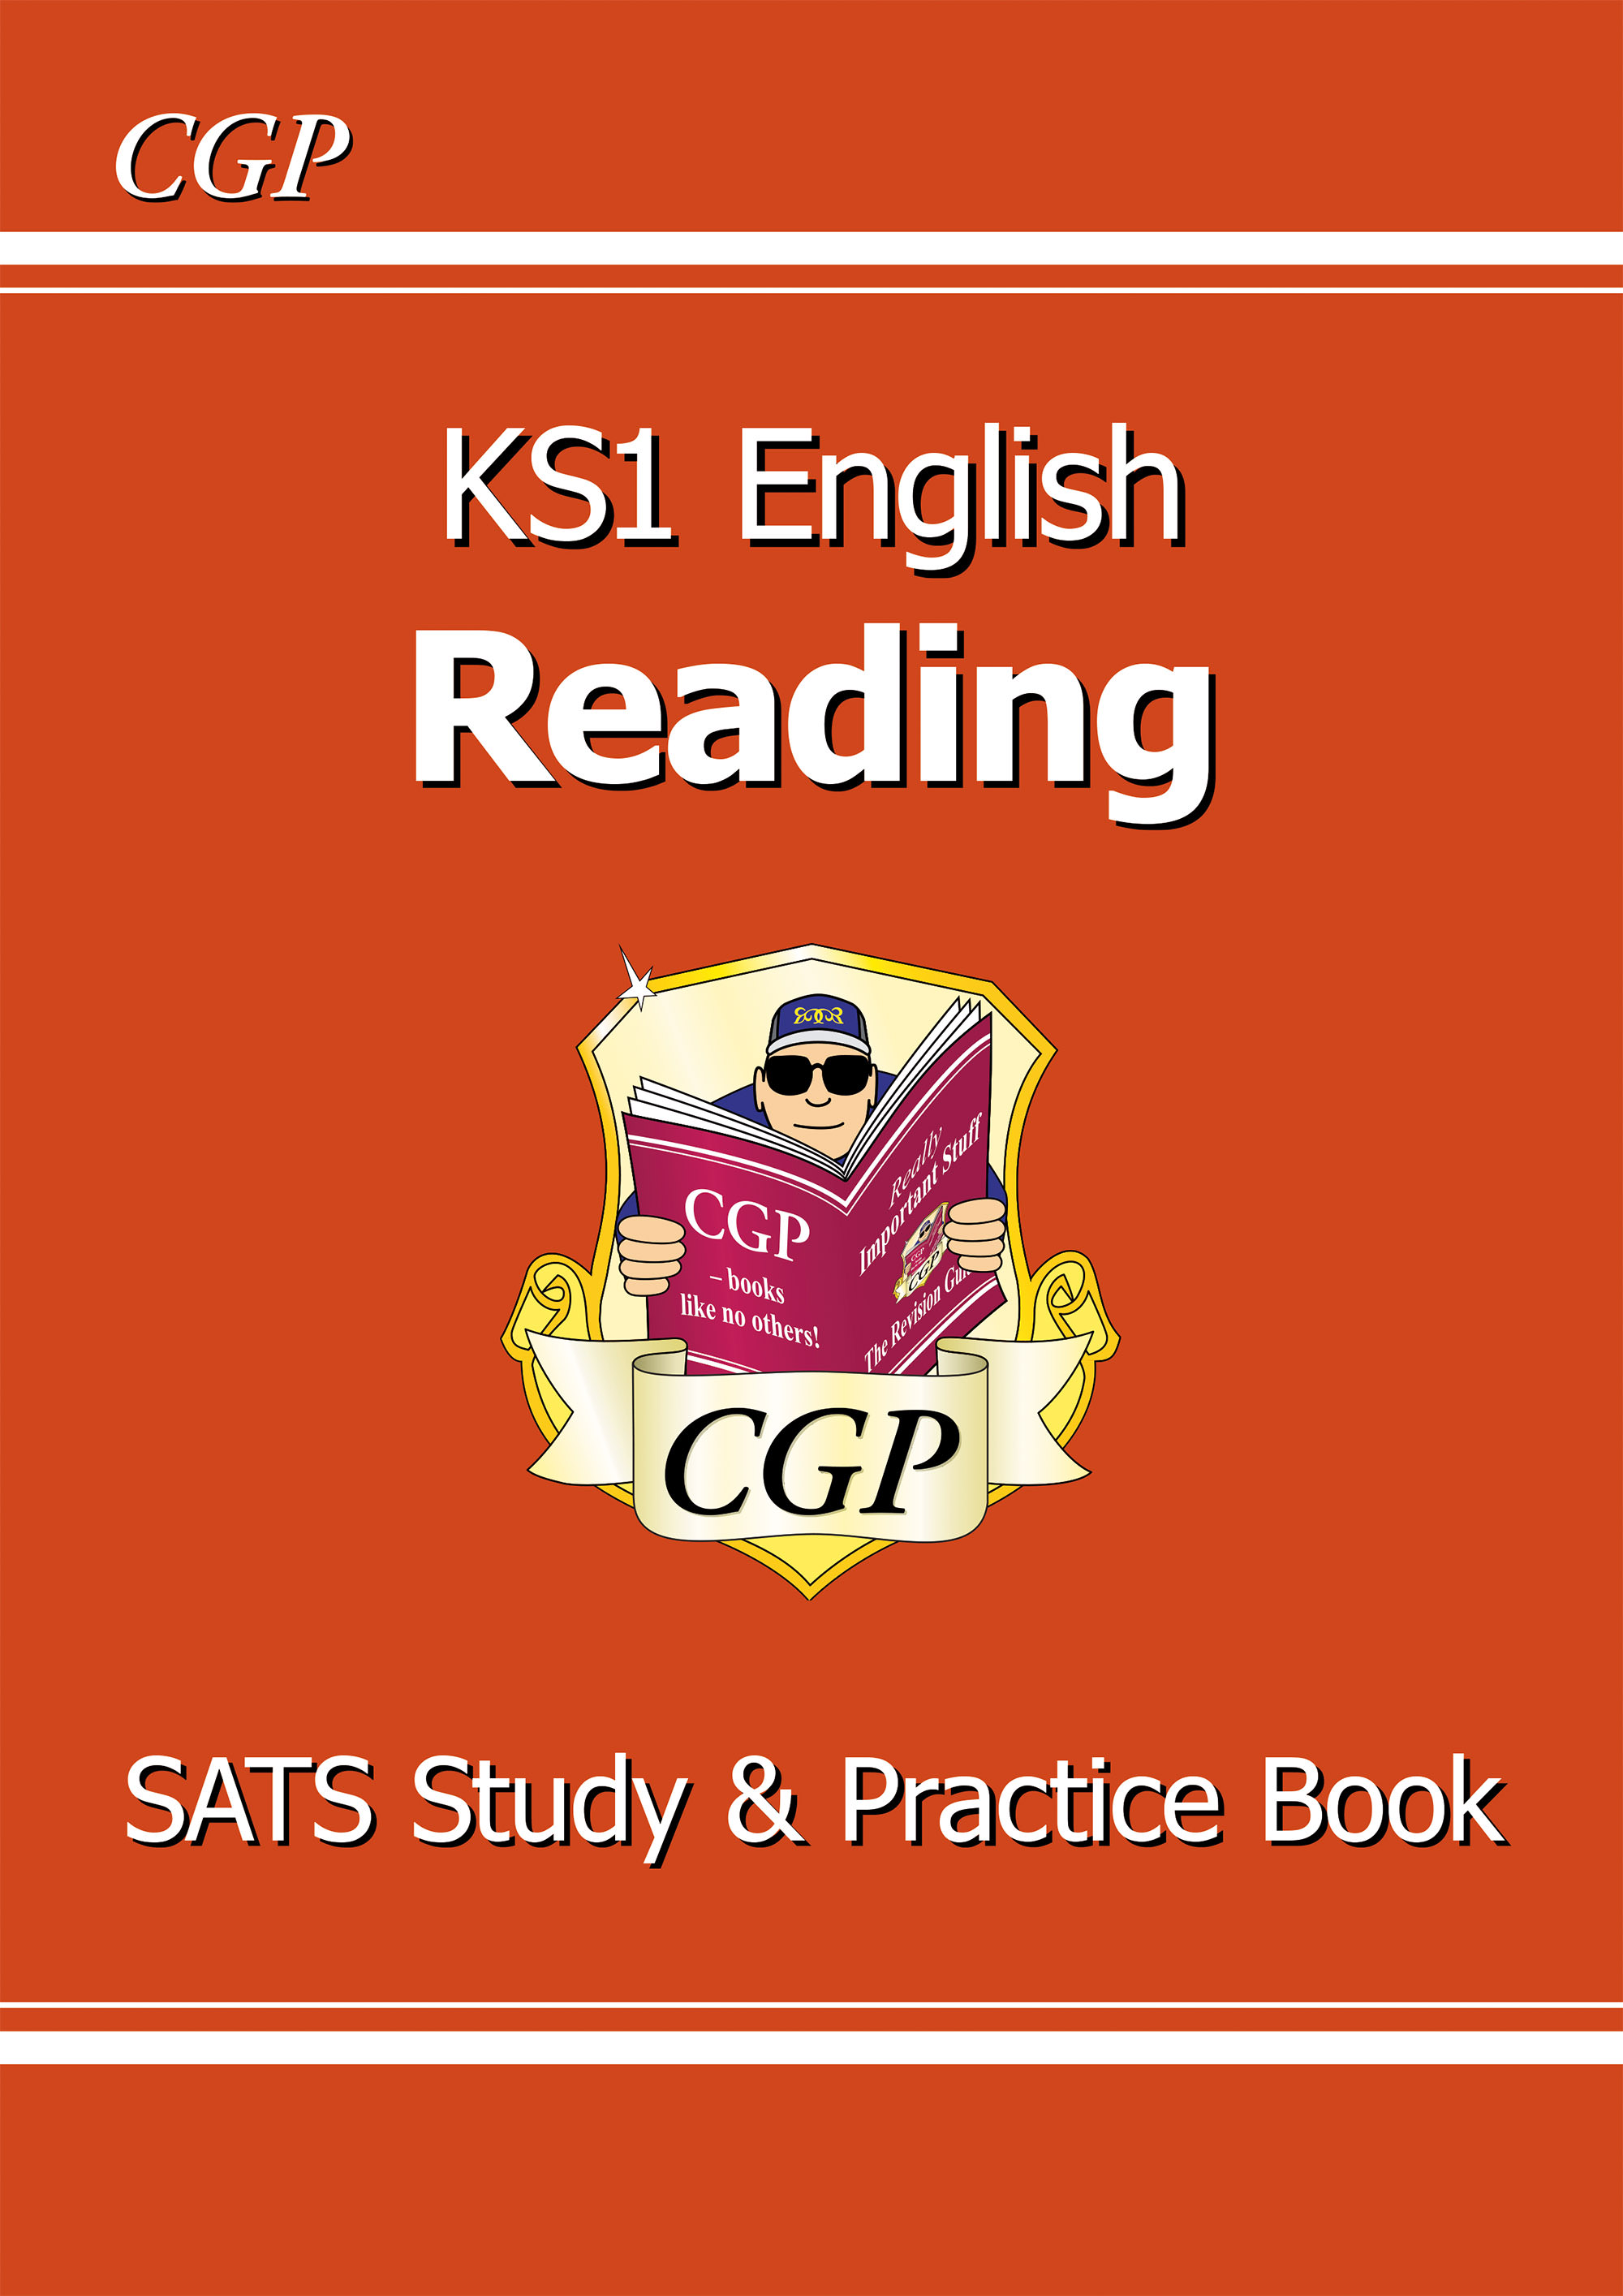 ERR11D - KS1 English Reading Study & Practice Book Online Edition